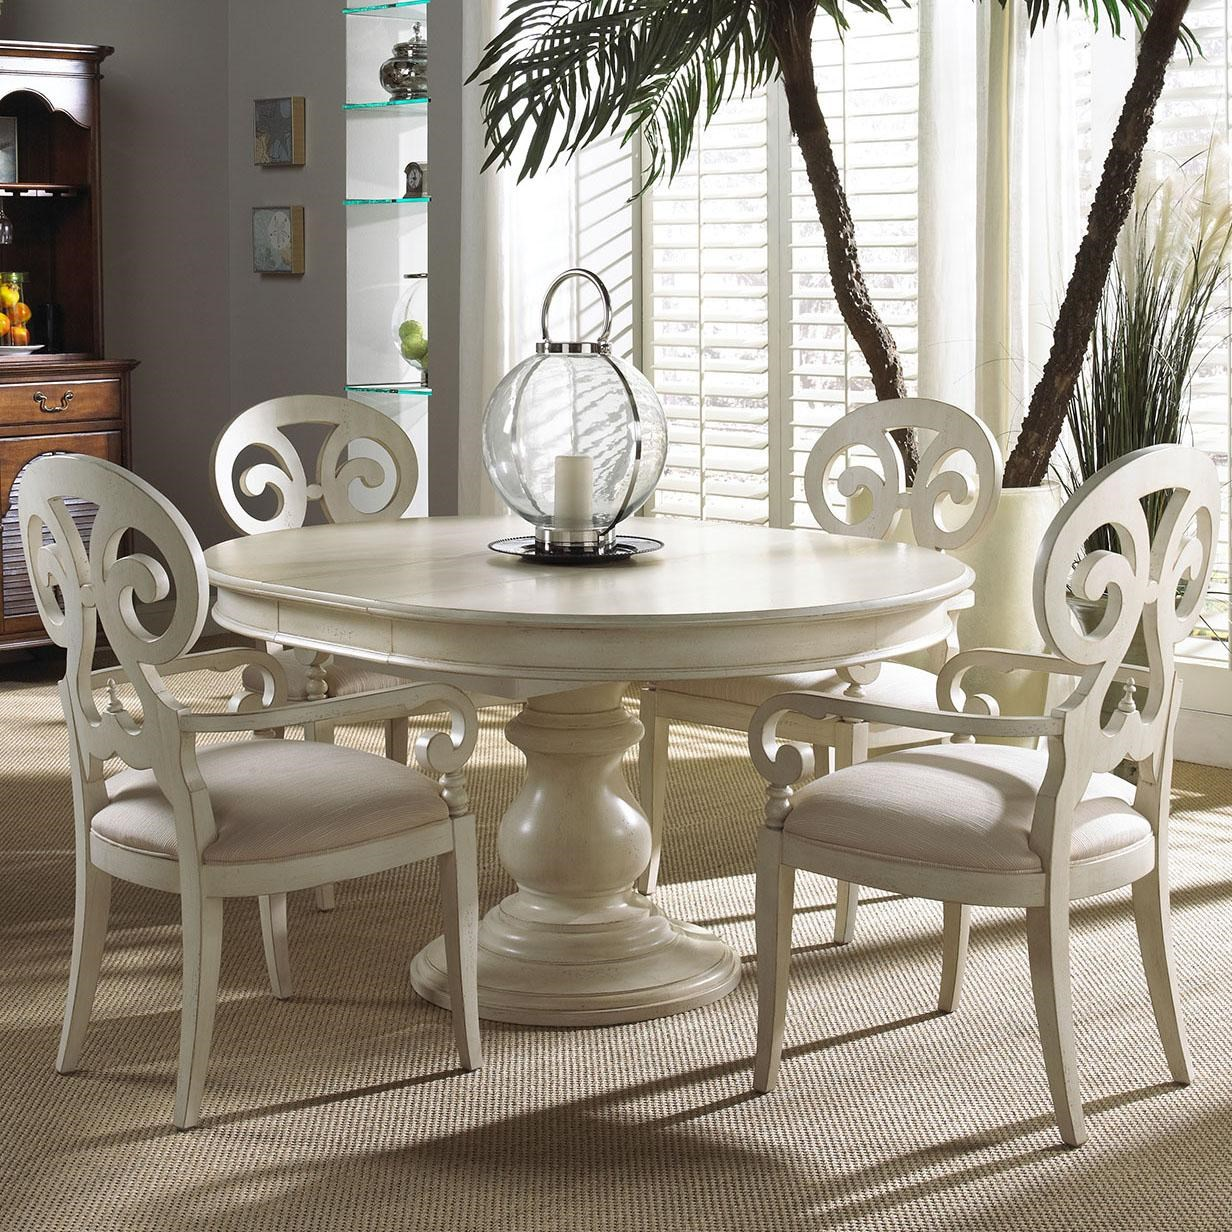 Michael Harrison Collection Summer Home 5 Piece Dining Table And Chair Set